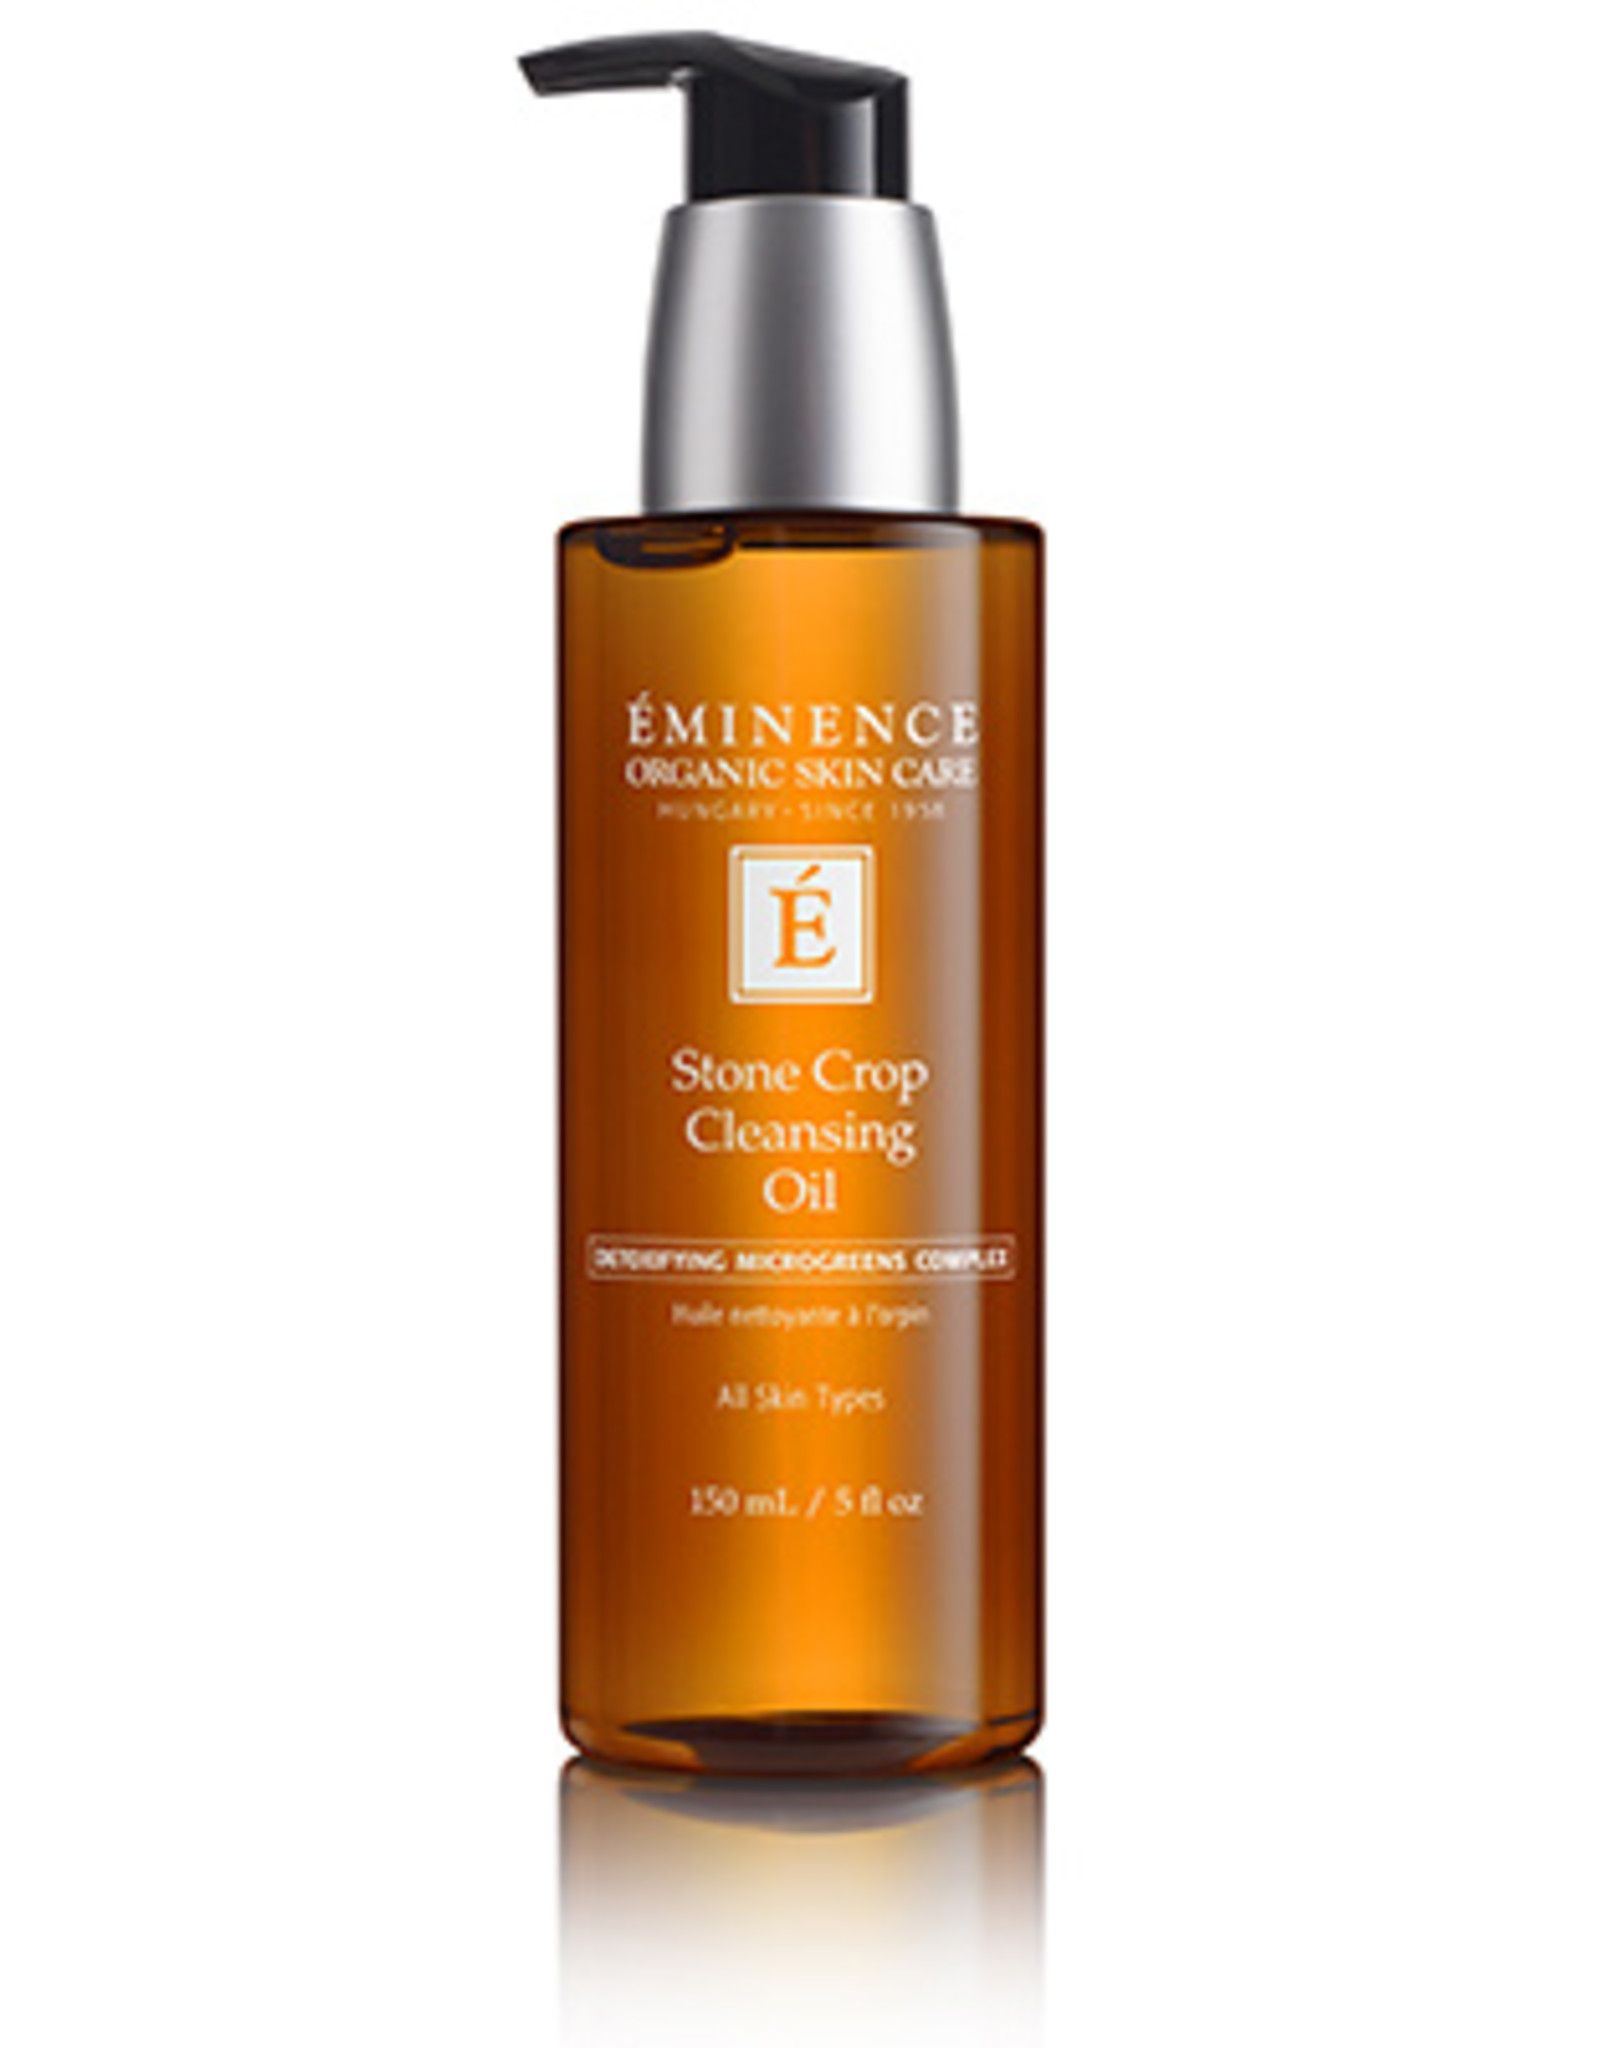 Eminence Organic Skin Care Stone Crop Cleansing Oil